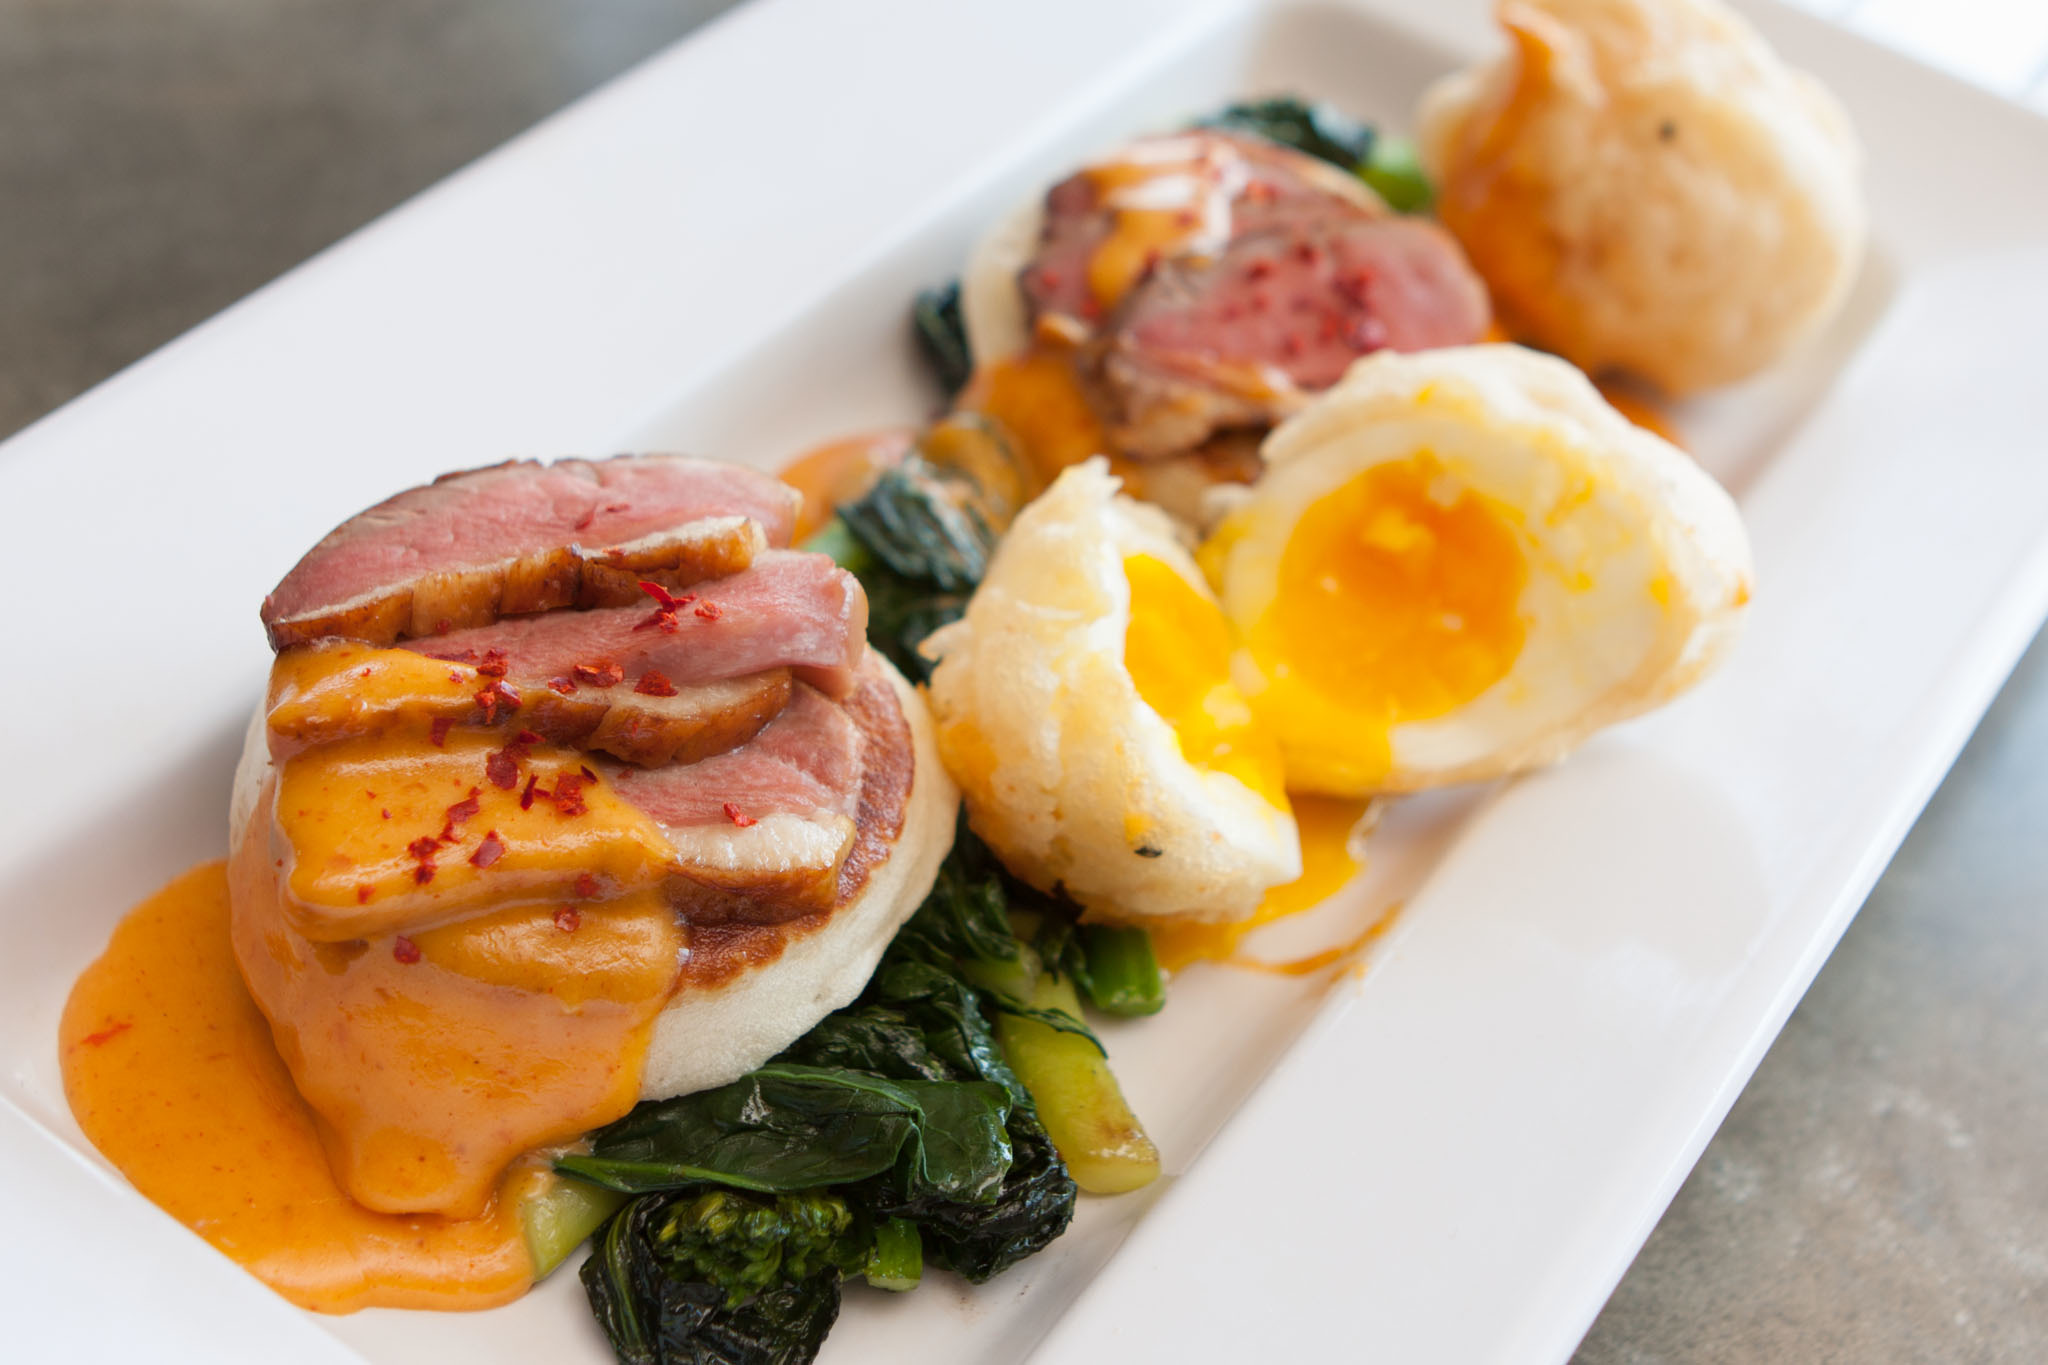 The Best Eggs Benedict To Have For Brunch In Chicago